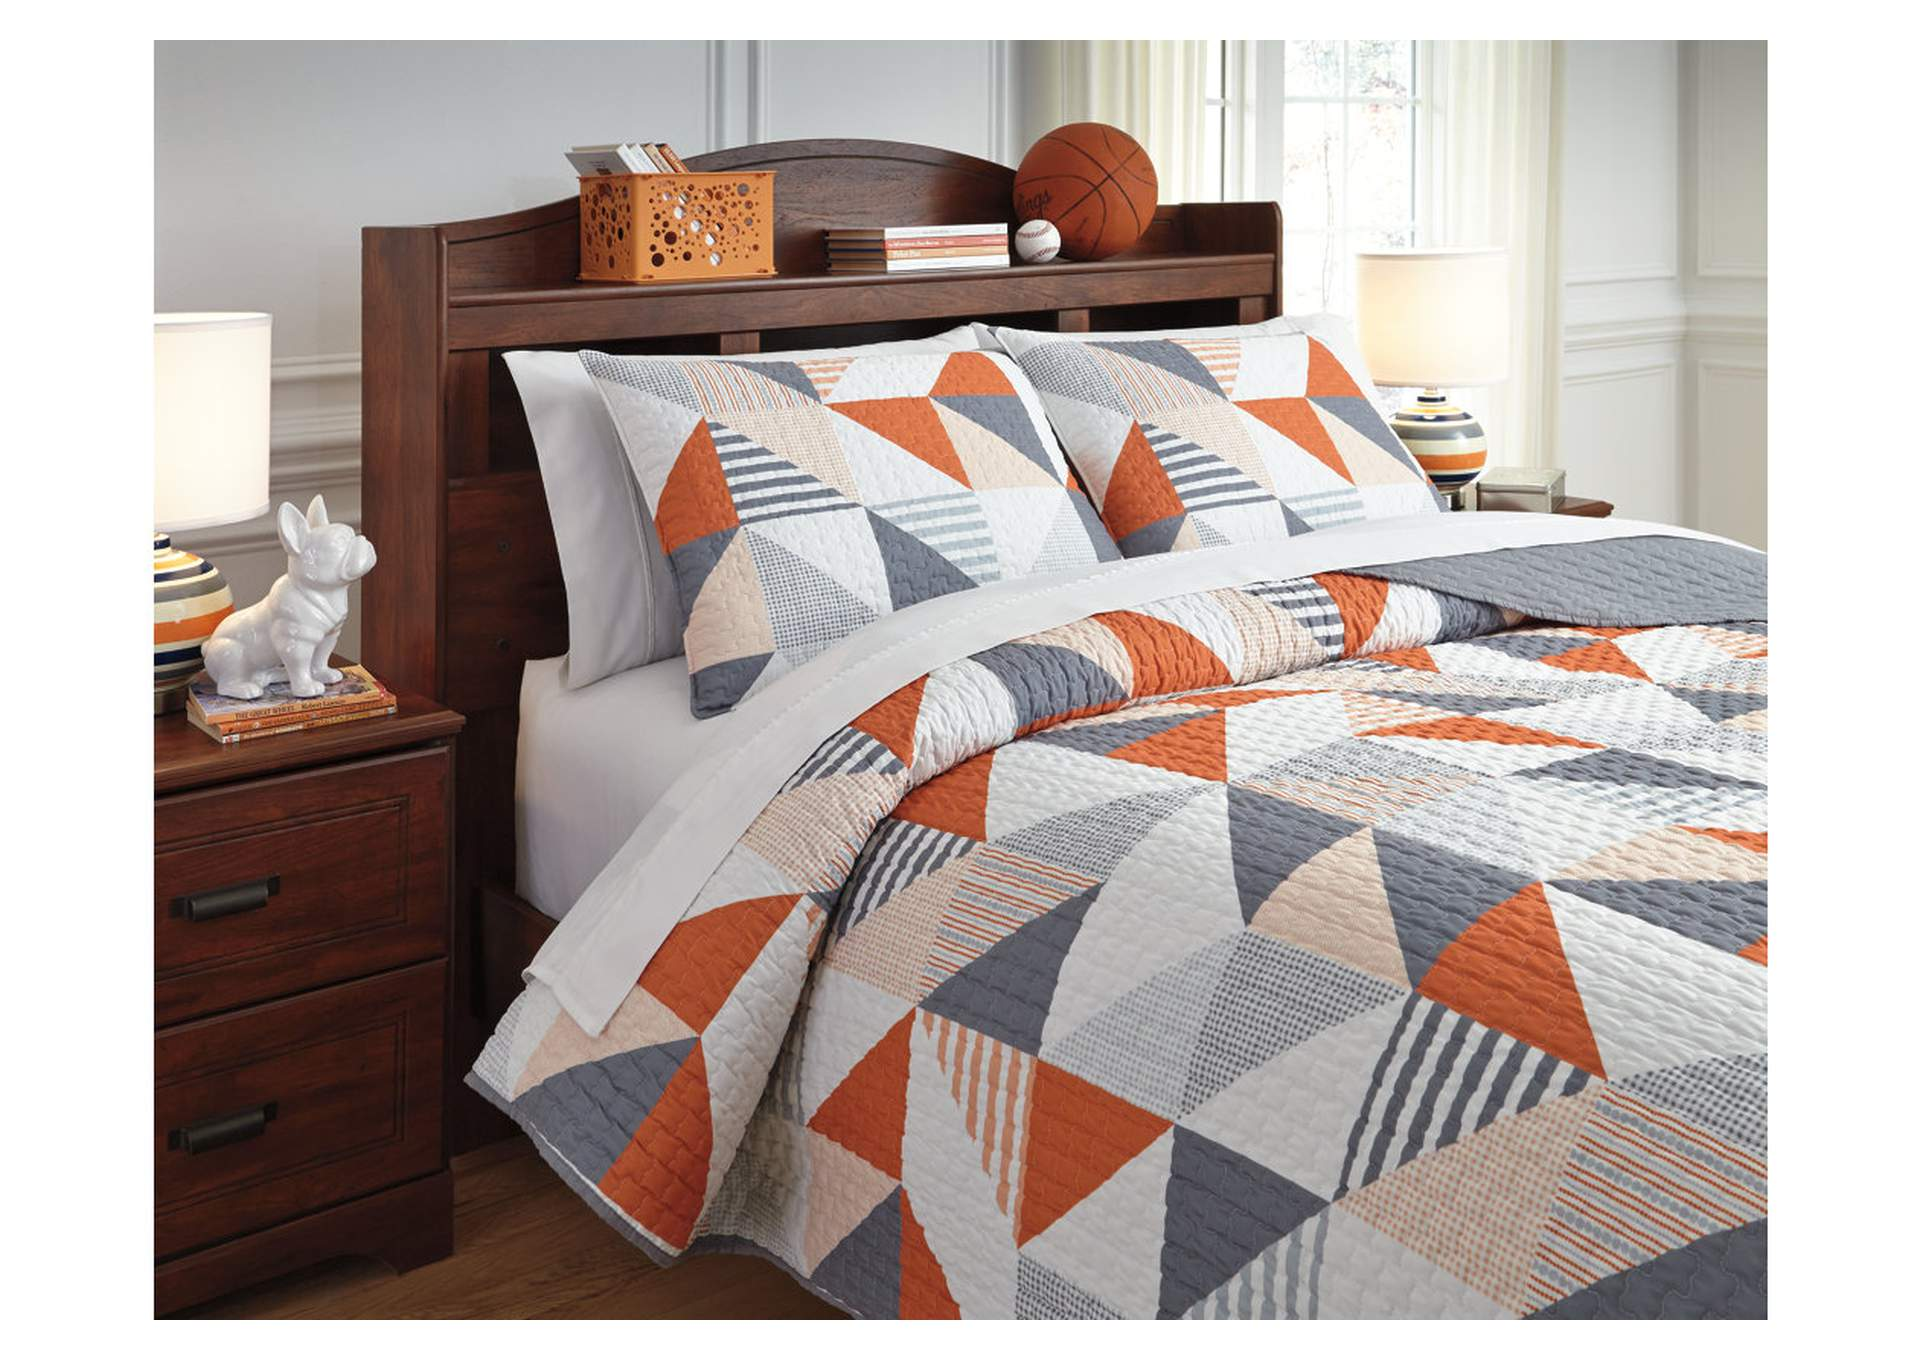 Layne 3-Piece Full Coverlet Set,Direct To Consumer Express